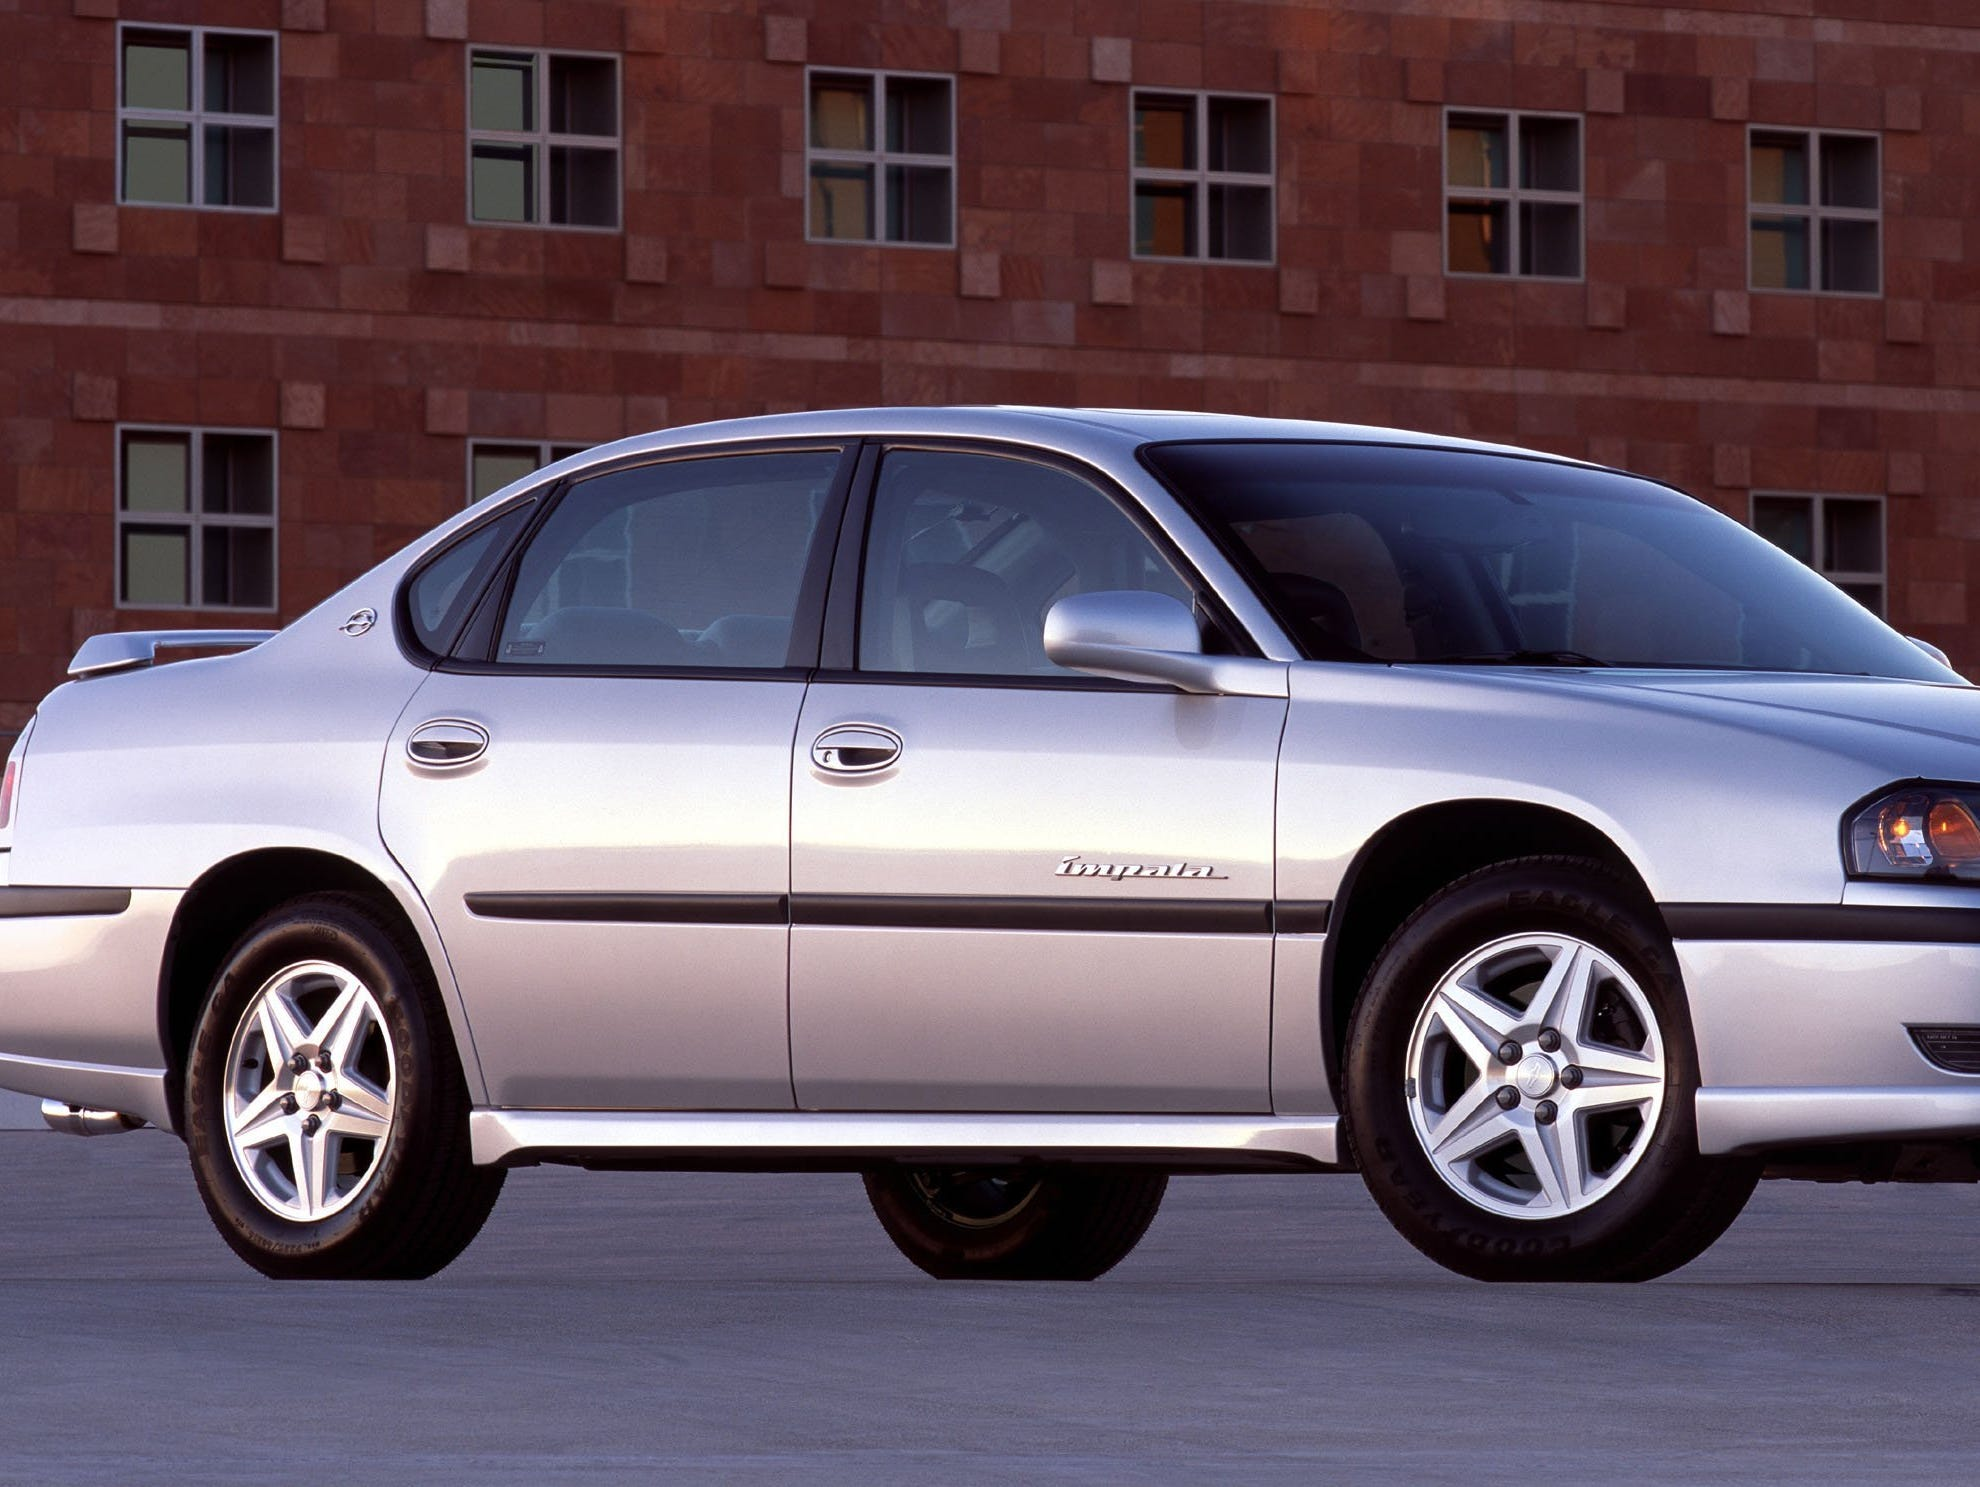 2003 Chevrolet Impala LS with Sport Appearance Package.